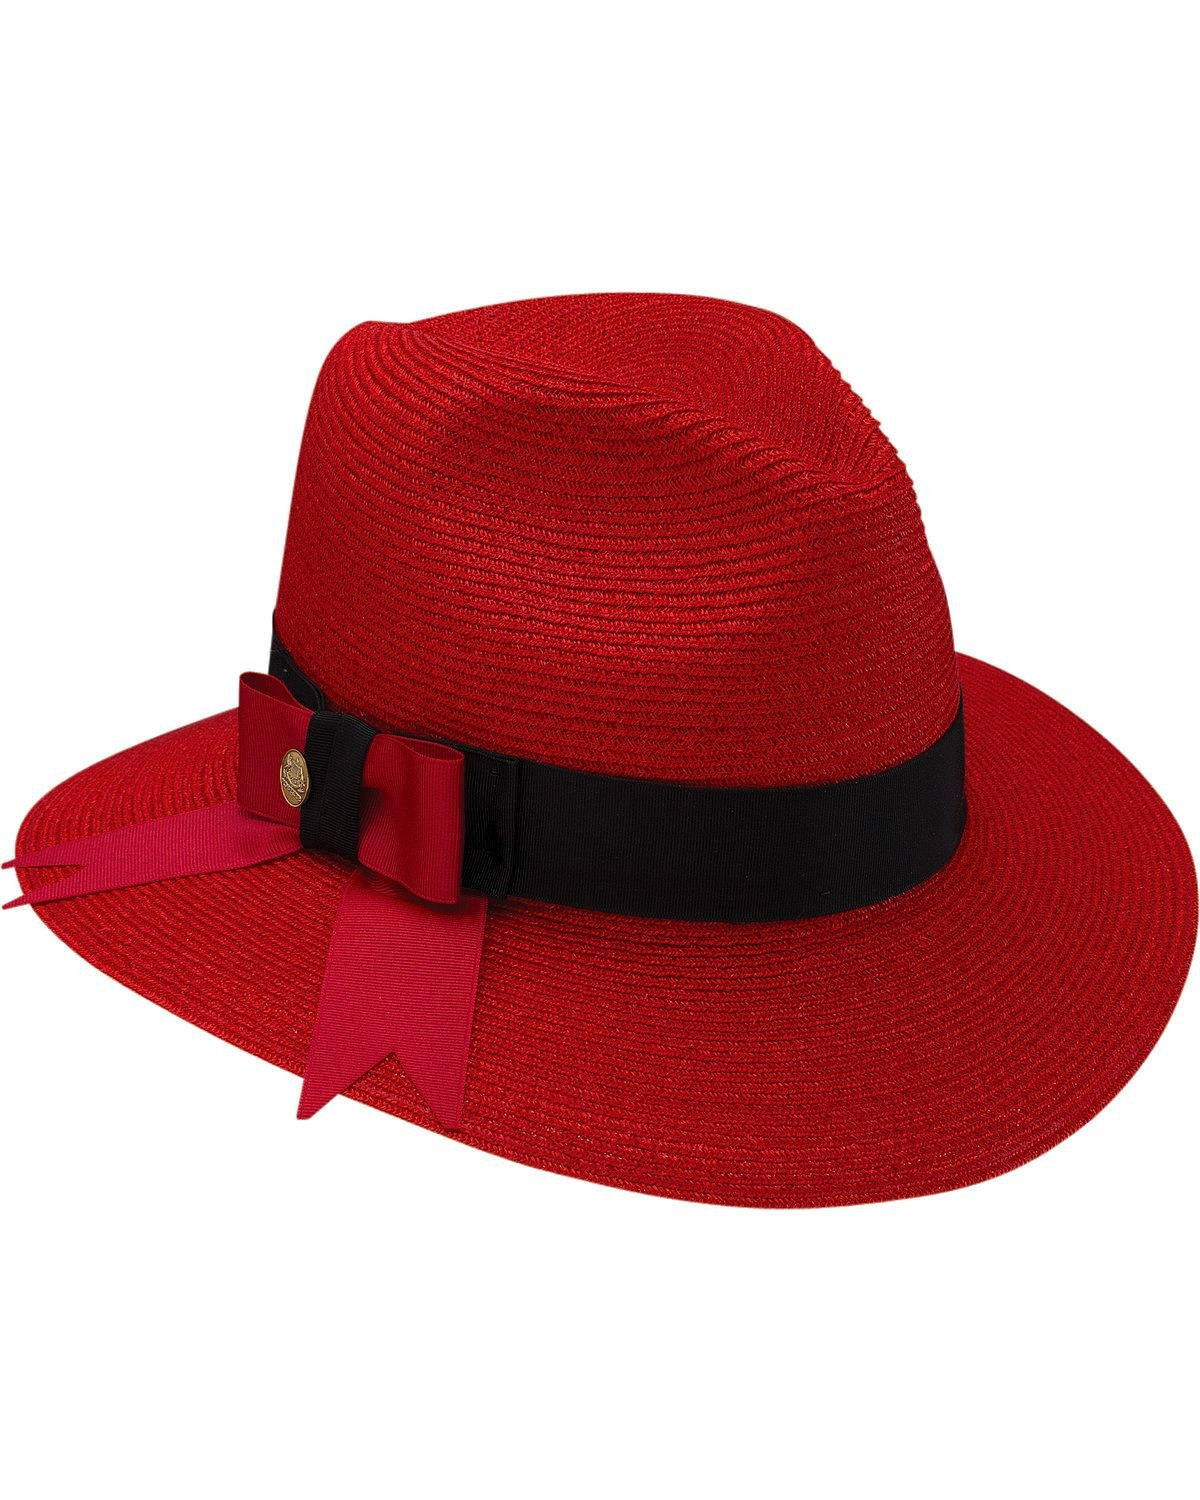 Stetson Women's Cat's Meow Hemp Braid Fedora Hat Red Medium